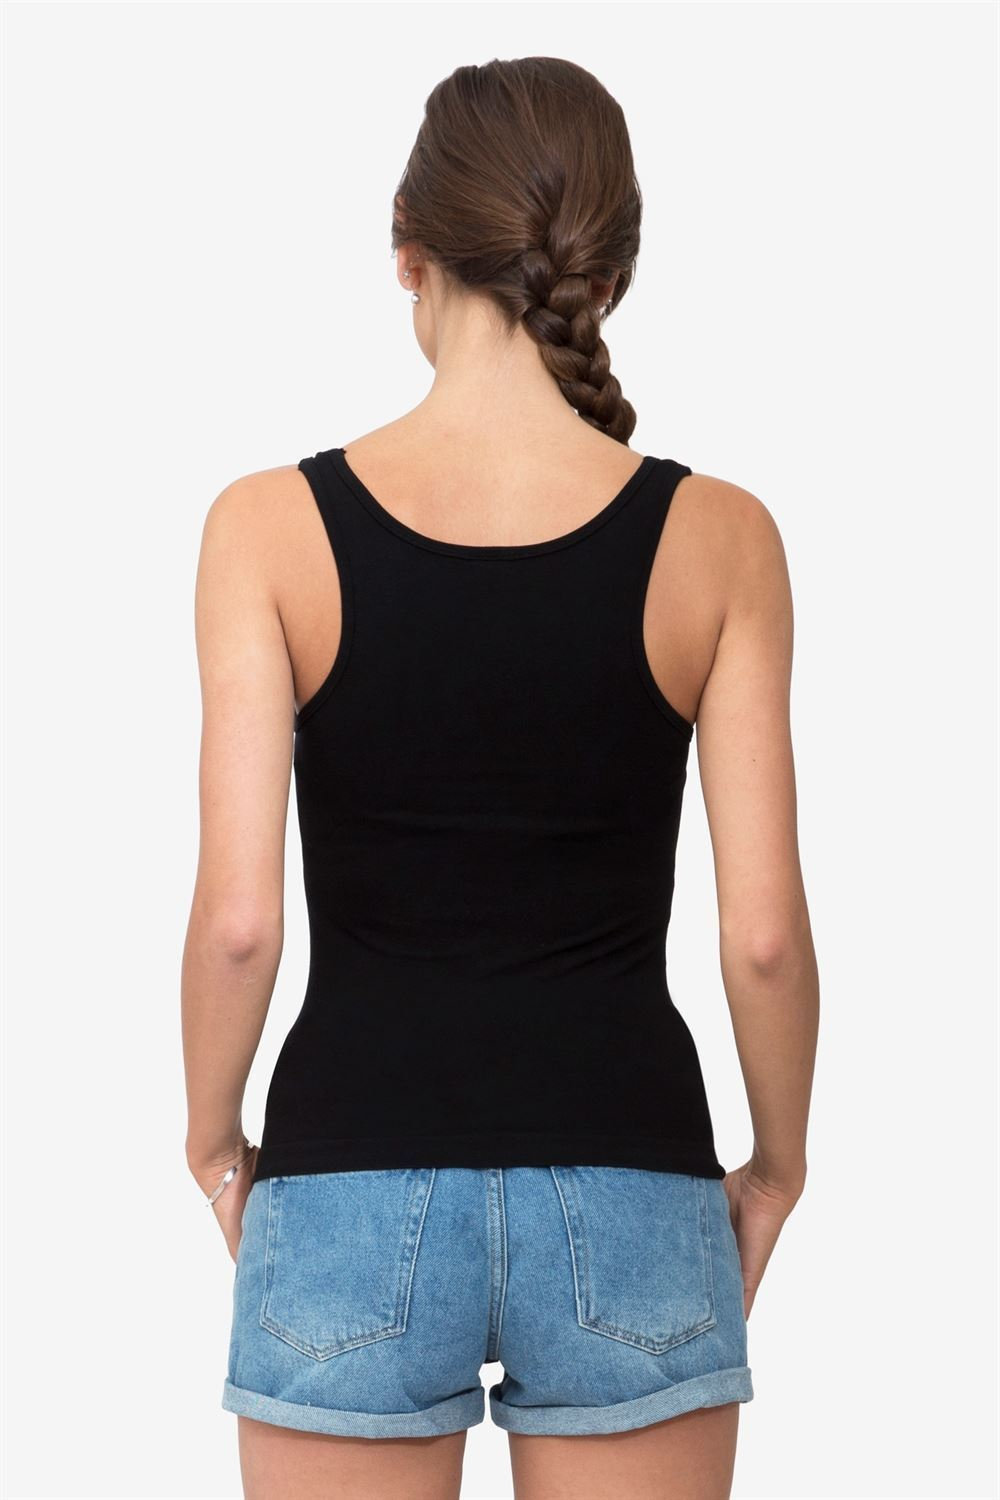 Black nursing tanktop  and top for breastfeeding - Organically grown - Seen from behind